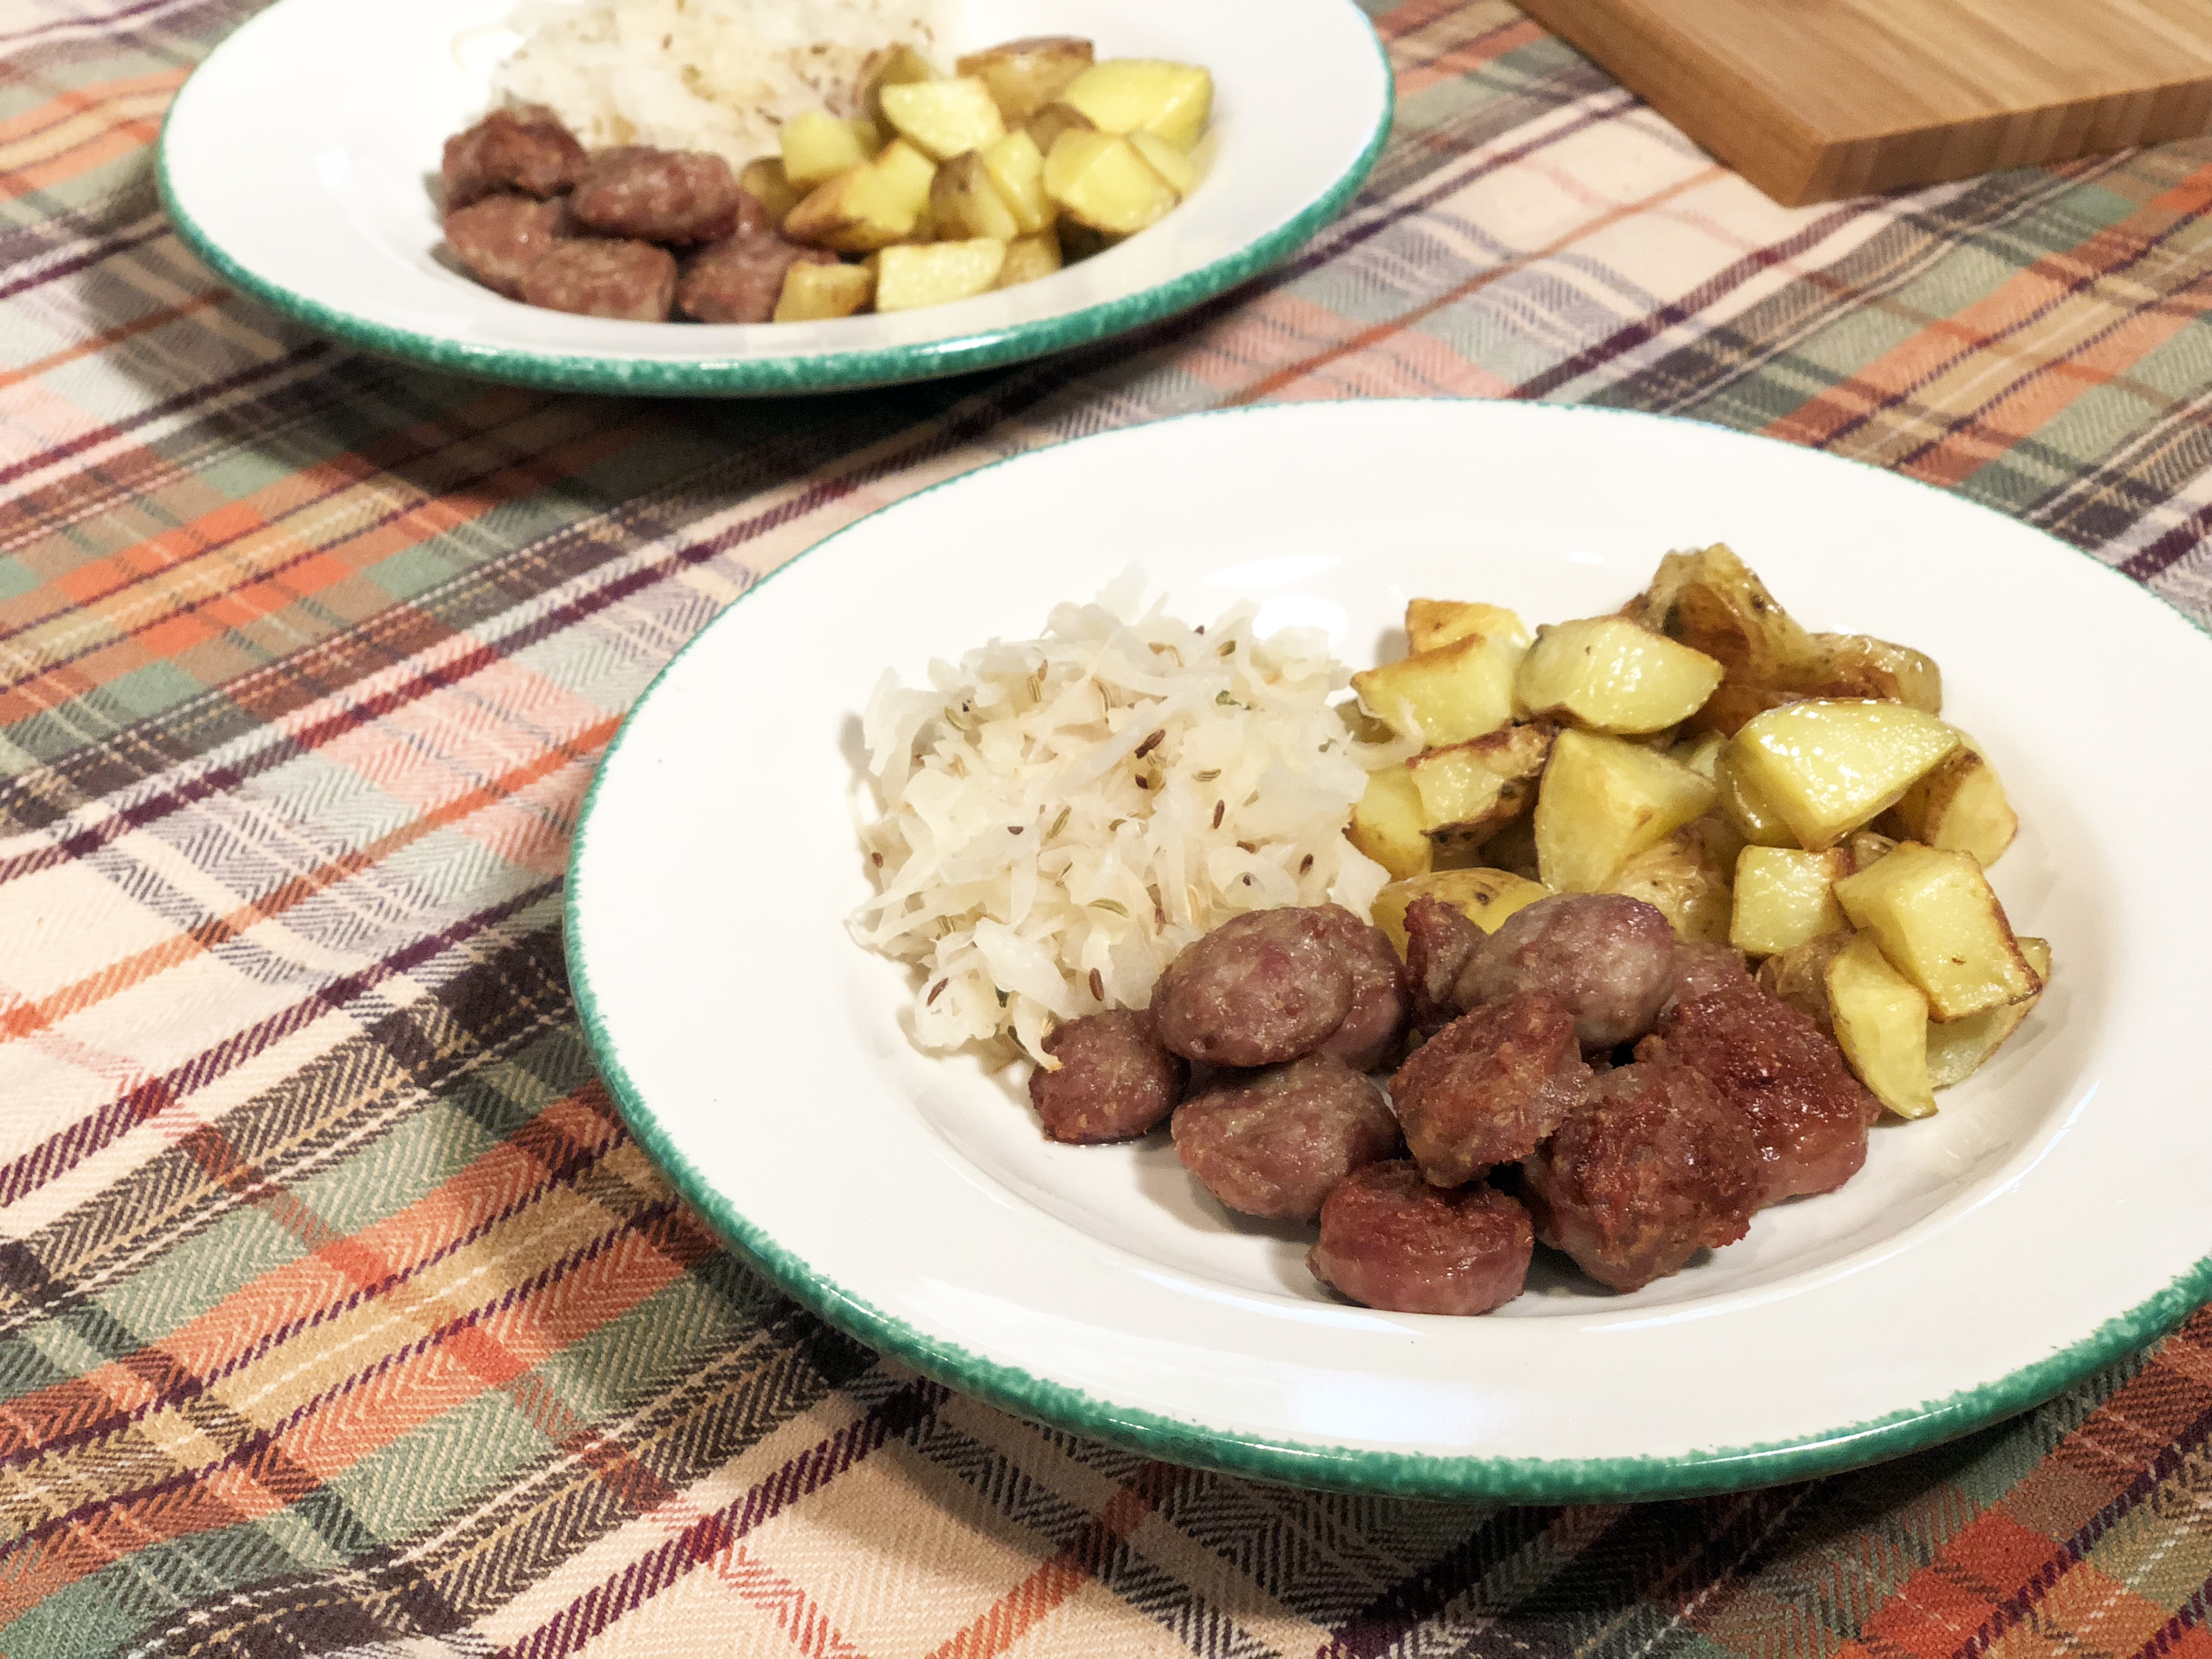 Bratwurst and Sauerkraut Sheet Pan Dinner